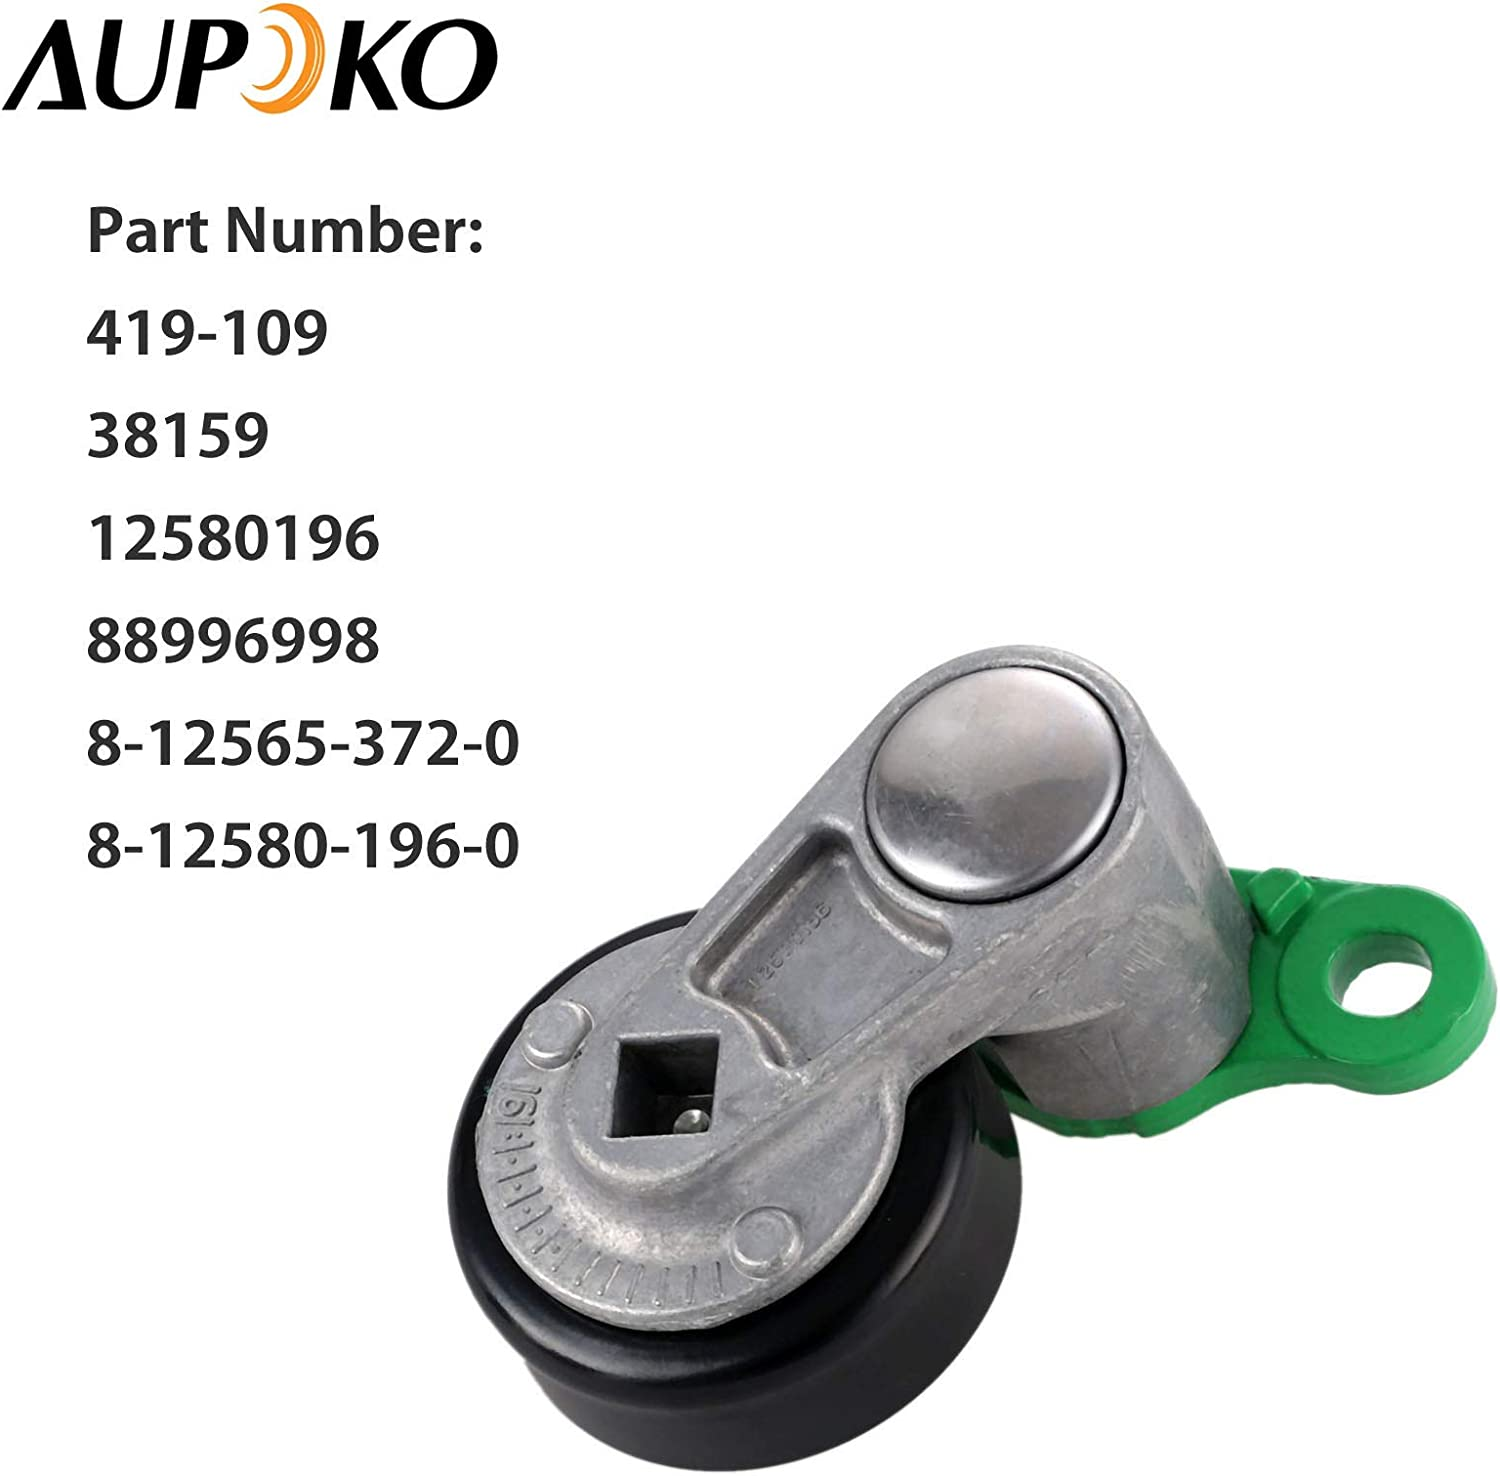 Accesory Drive Belt Tensioner Pulley For Honda Passport 3.2 L